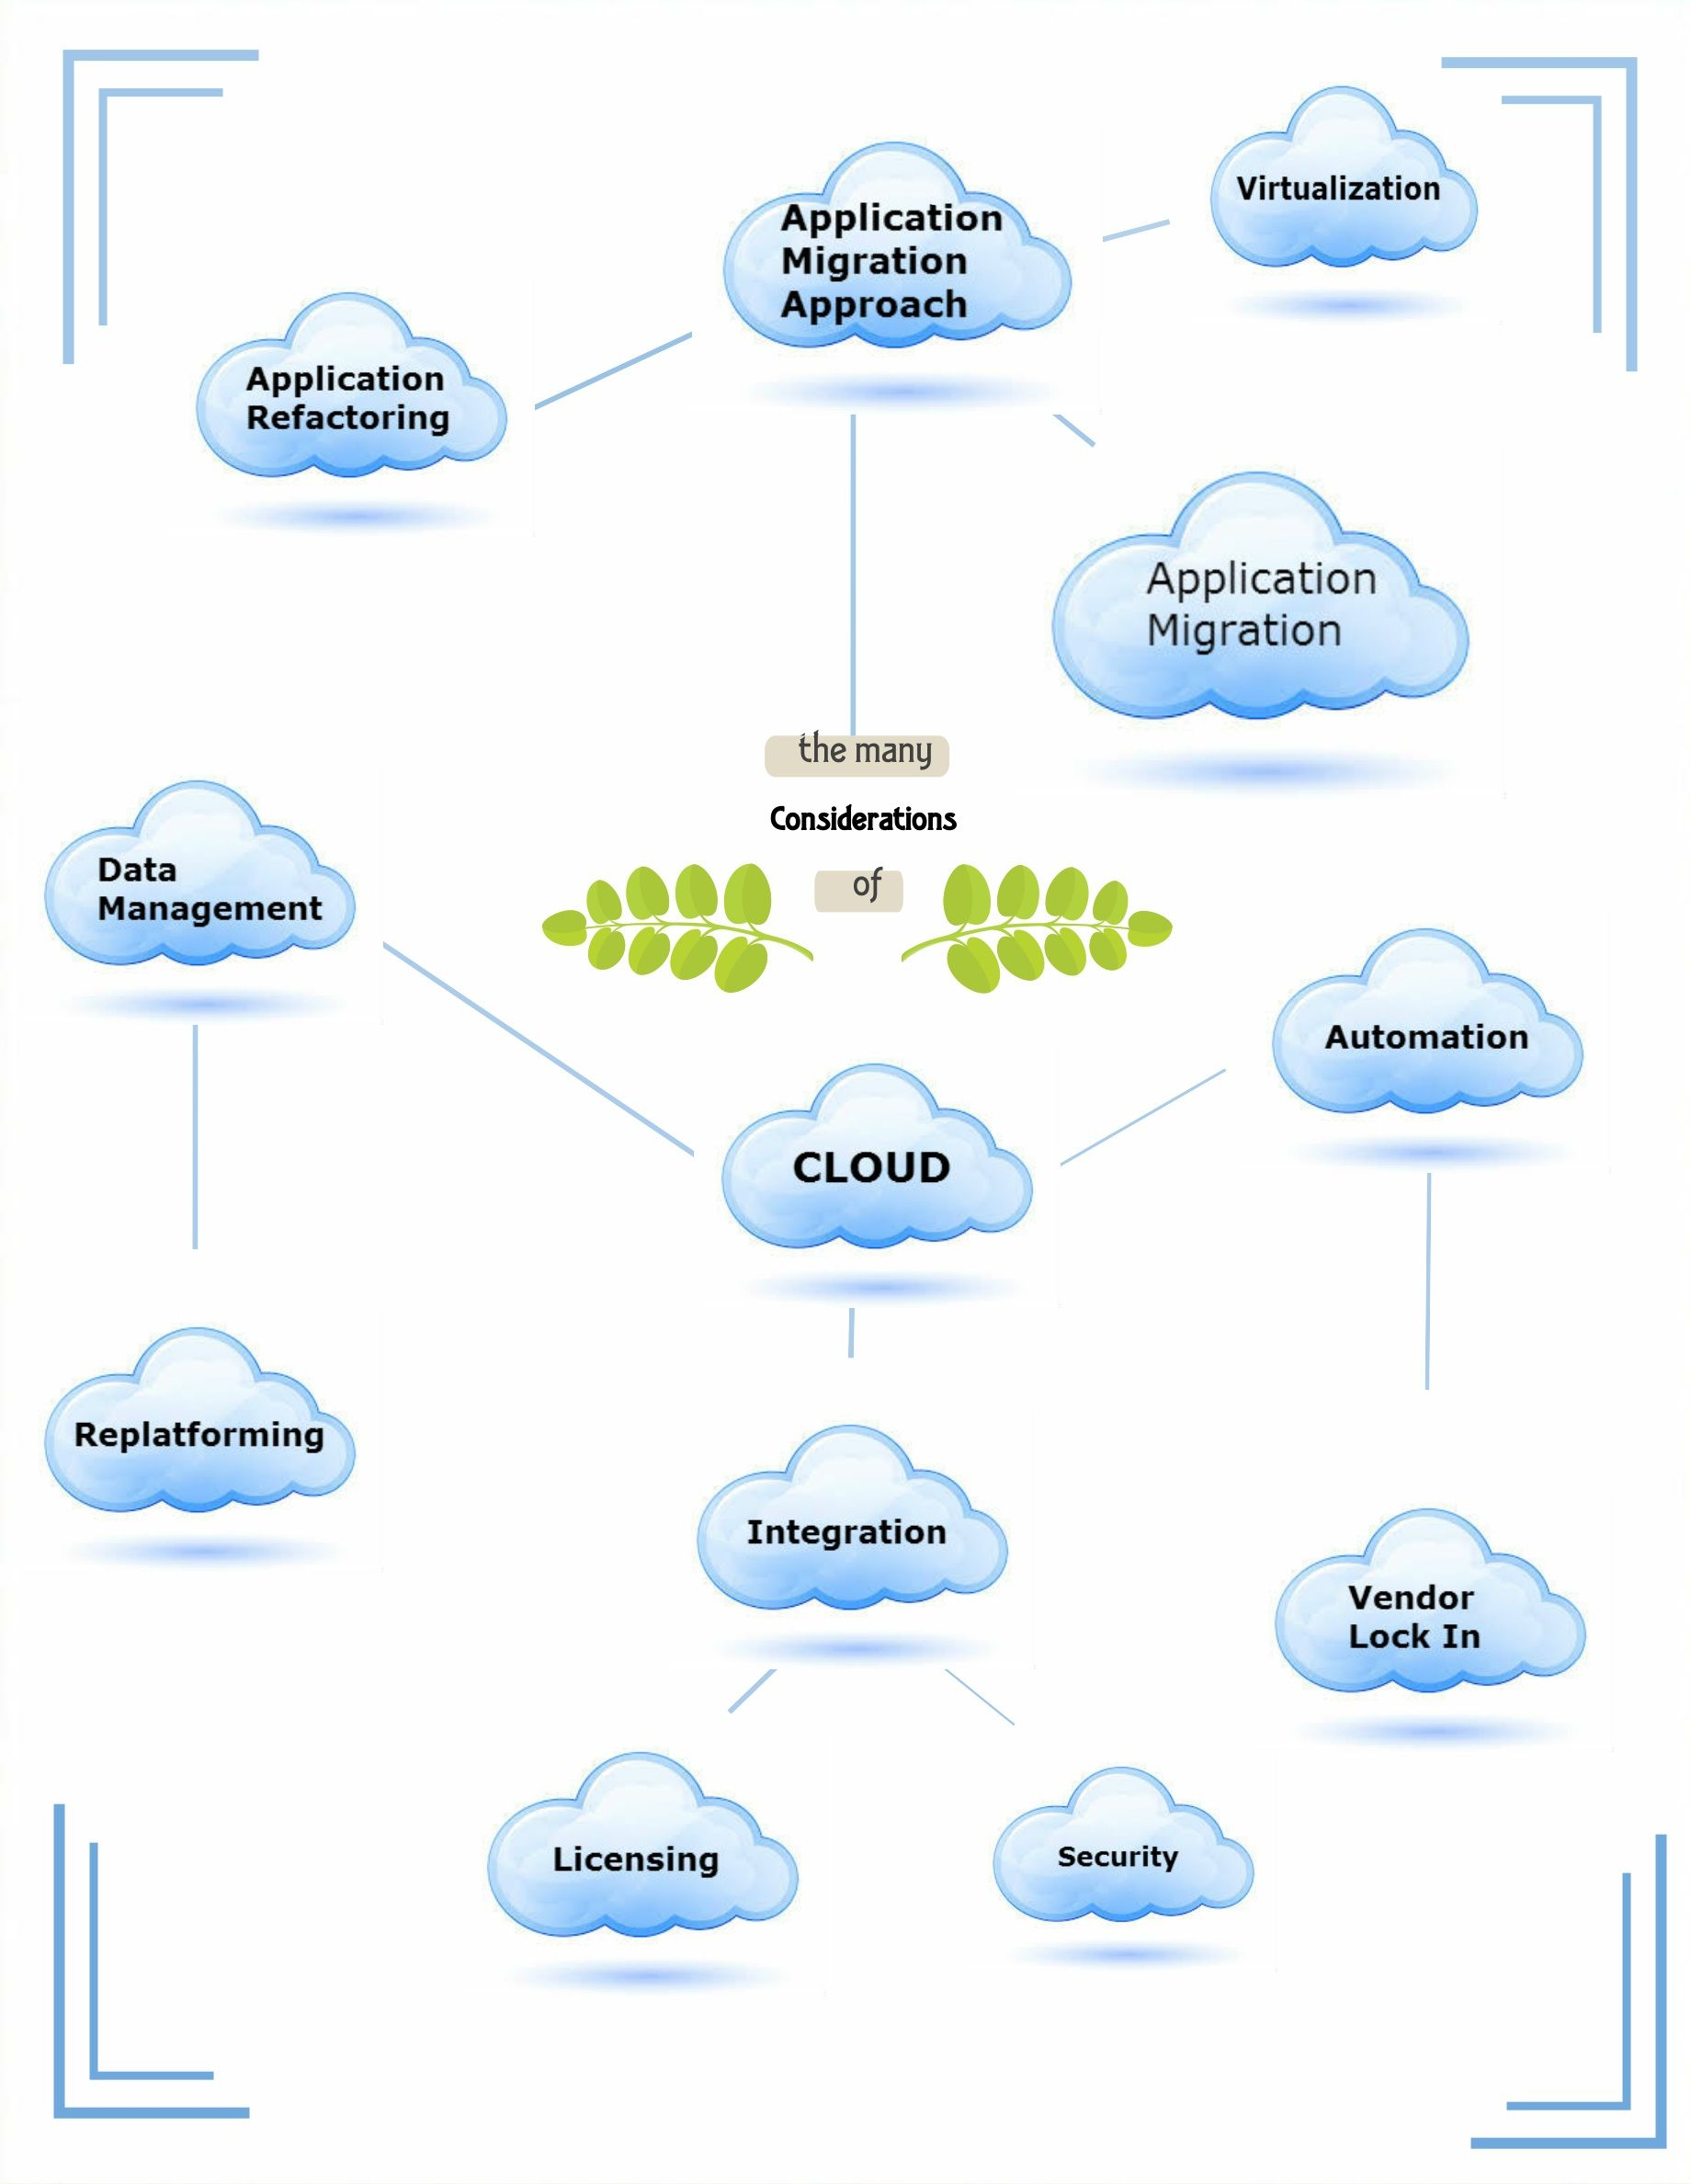 What are the consideration that cloud migration consist of?